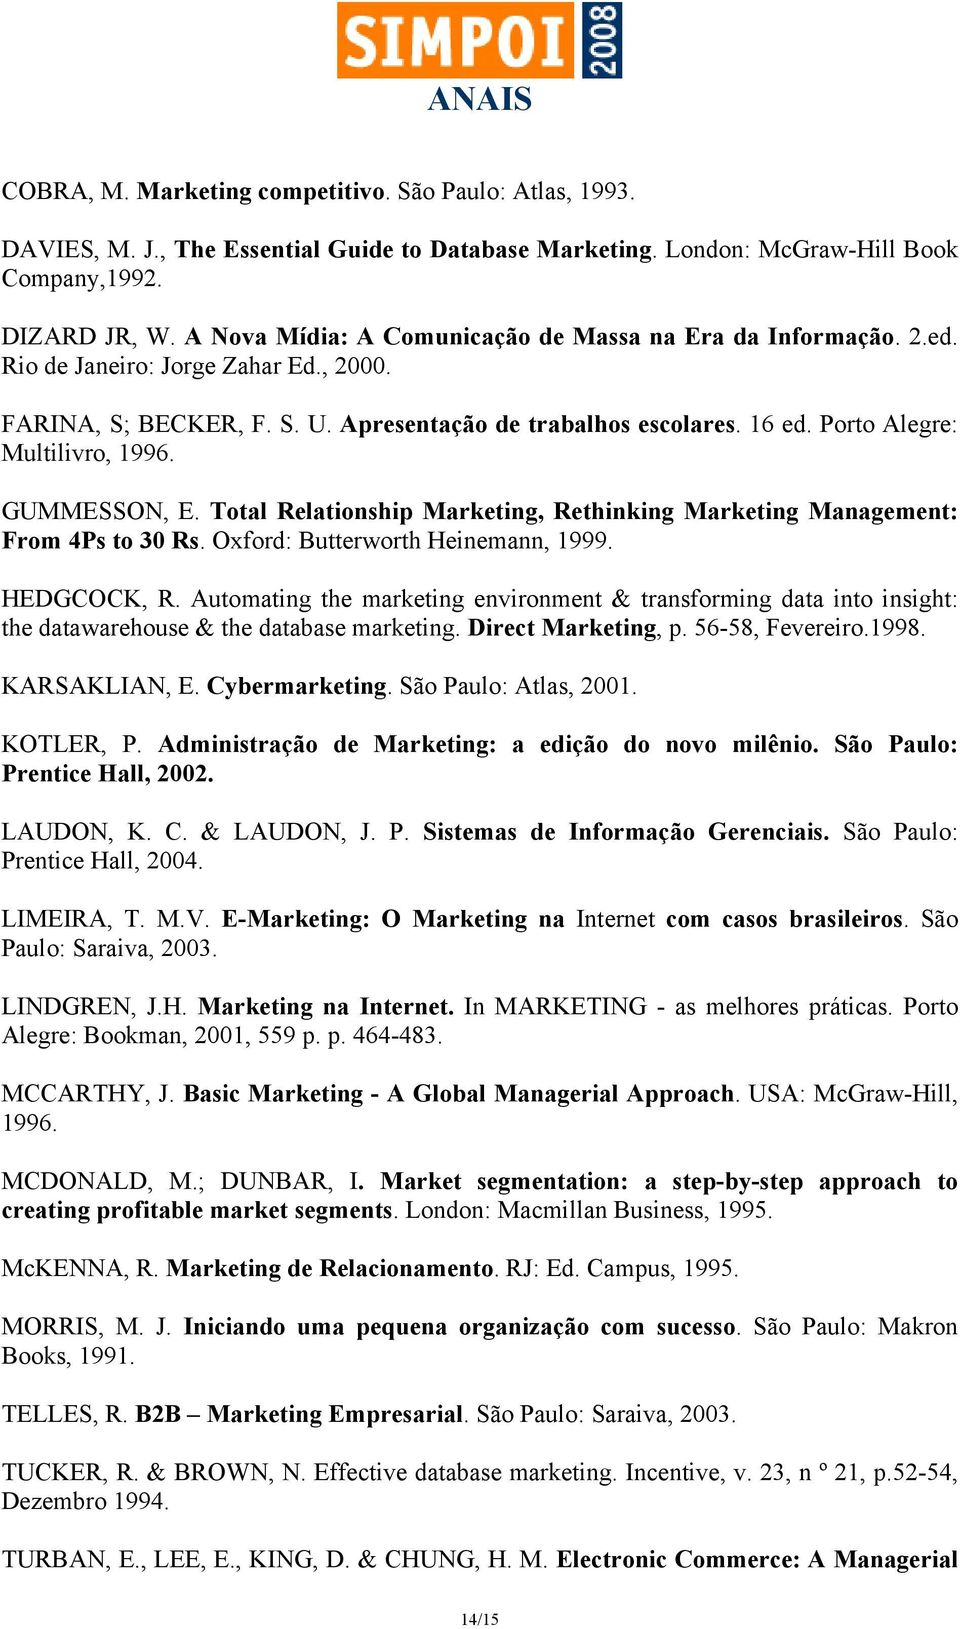 Porto Alegre: Multilivro, 1996. GUMMESSON, E. Total Relationship Marketing, Rethinking Marketing Management: From 4Ps to 30 Rs. Oxford: Butterworth Heinemann, 1999. HEDGCOCK, R.